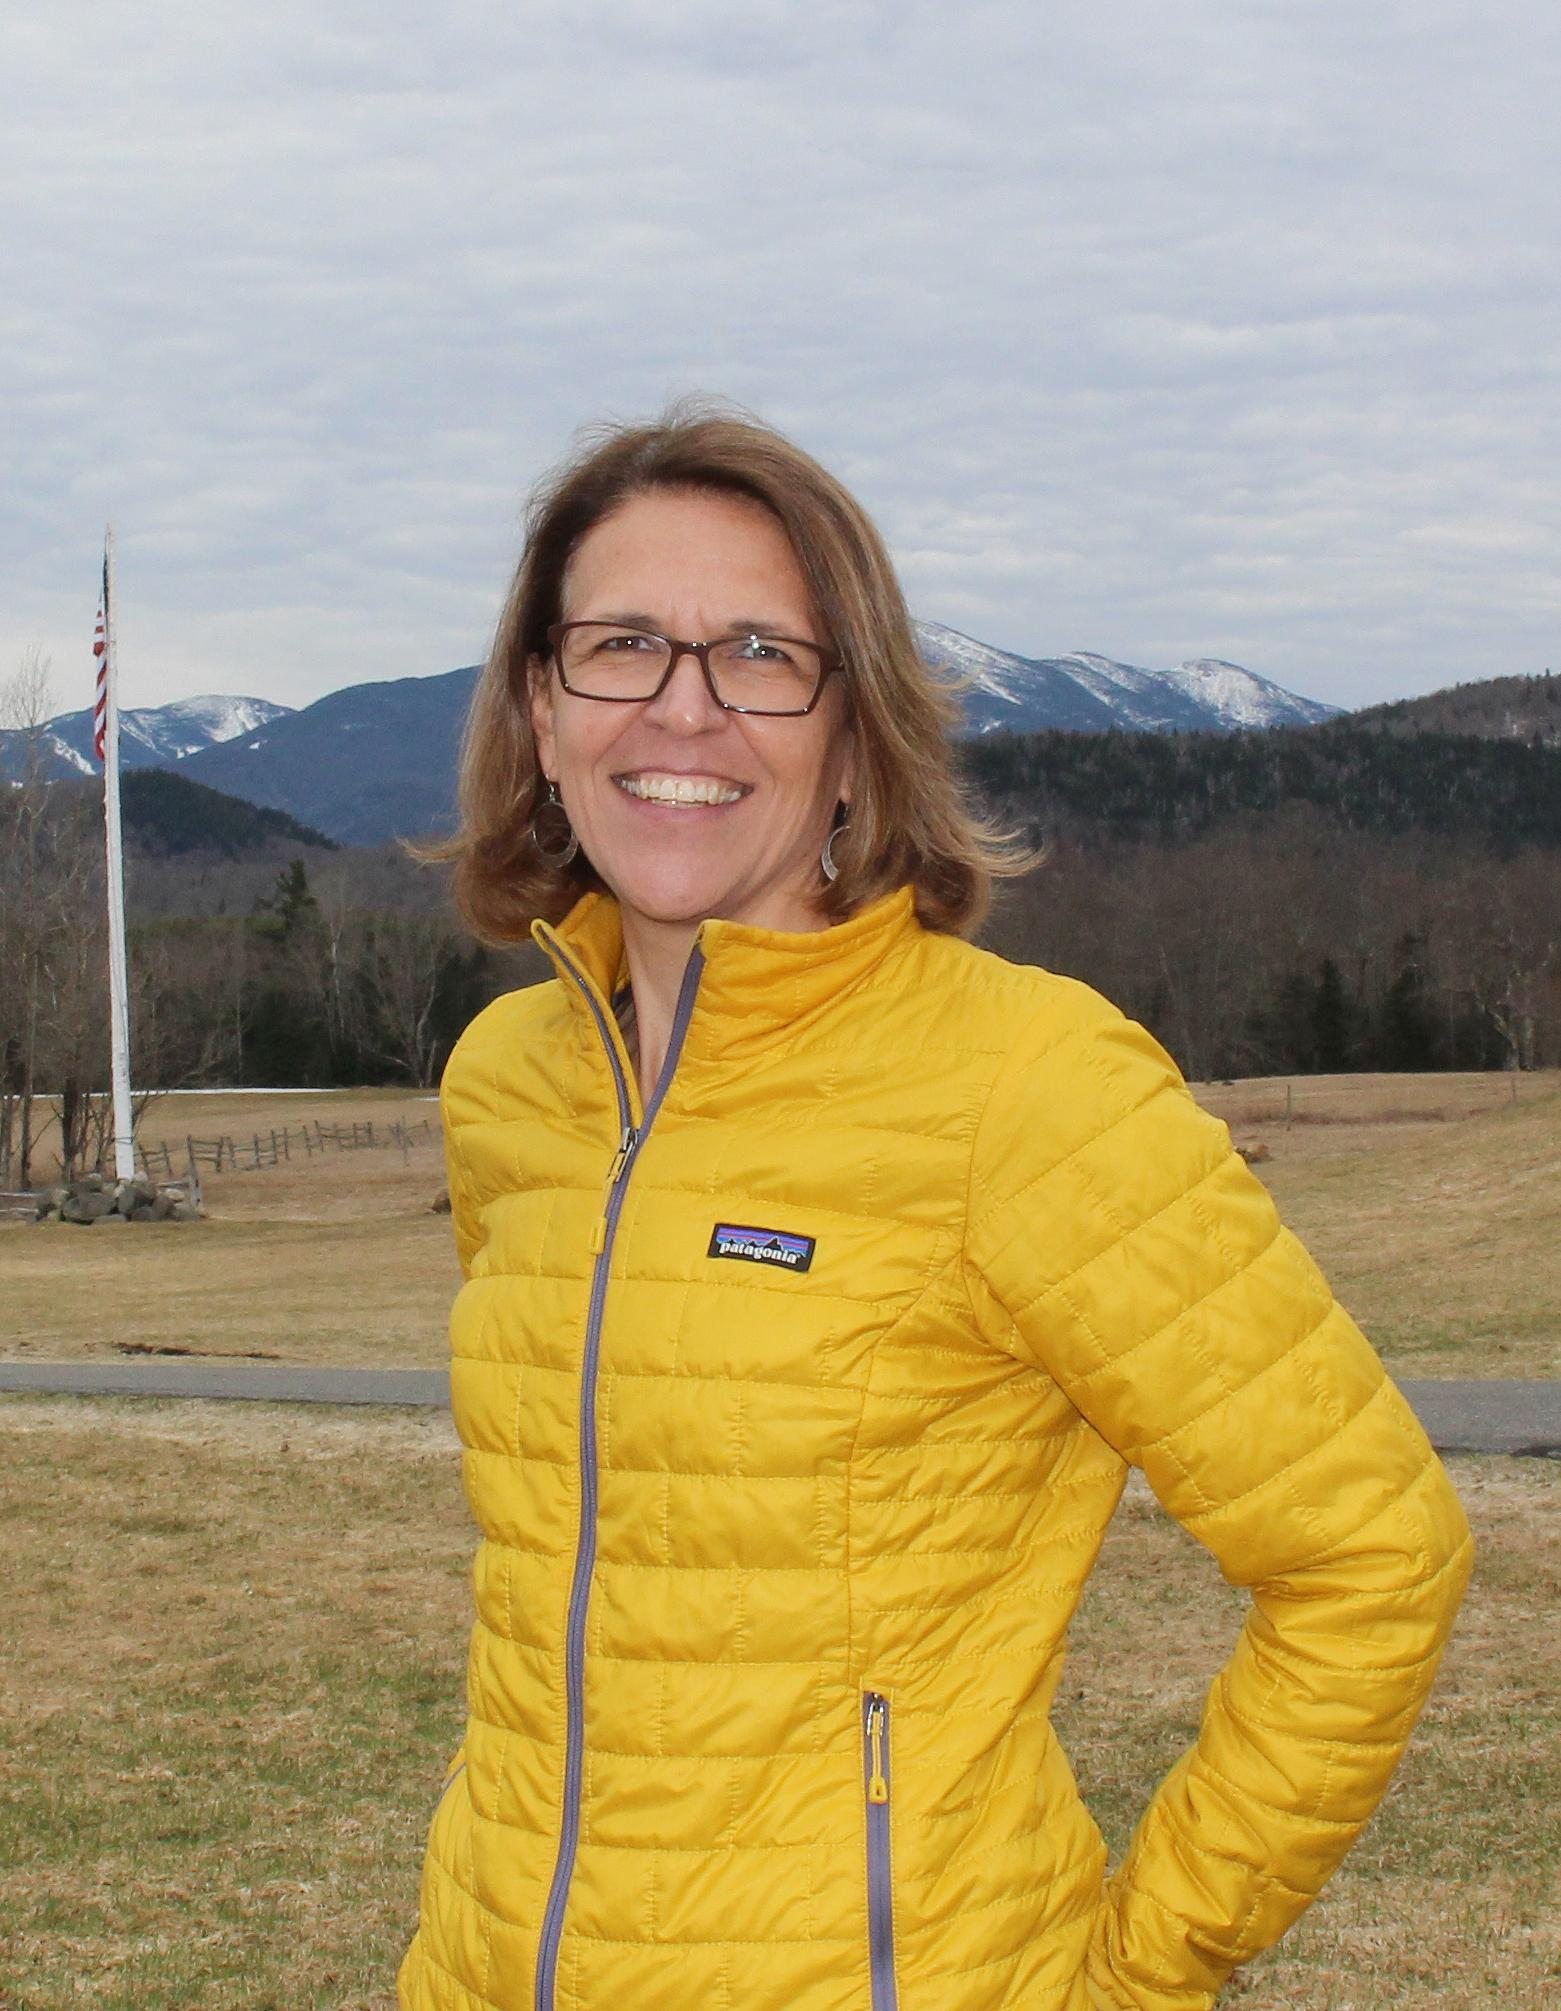 Connie Prickett, Vice President of Communications & Strategic Initiatives of Adirondack Foundation